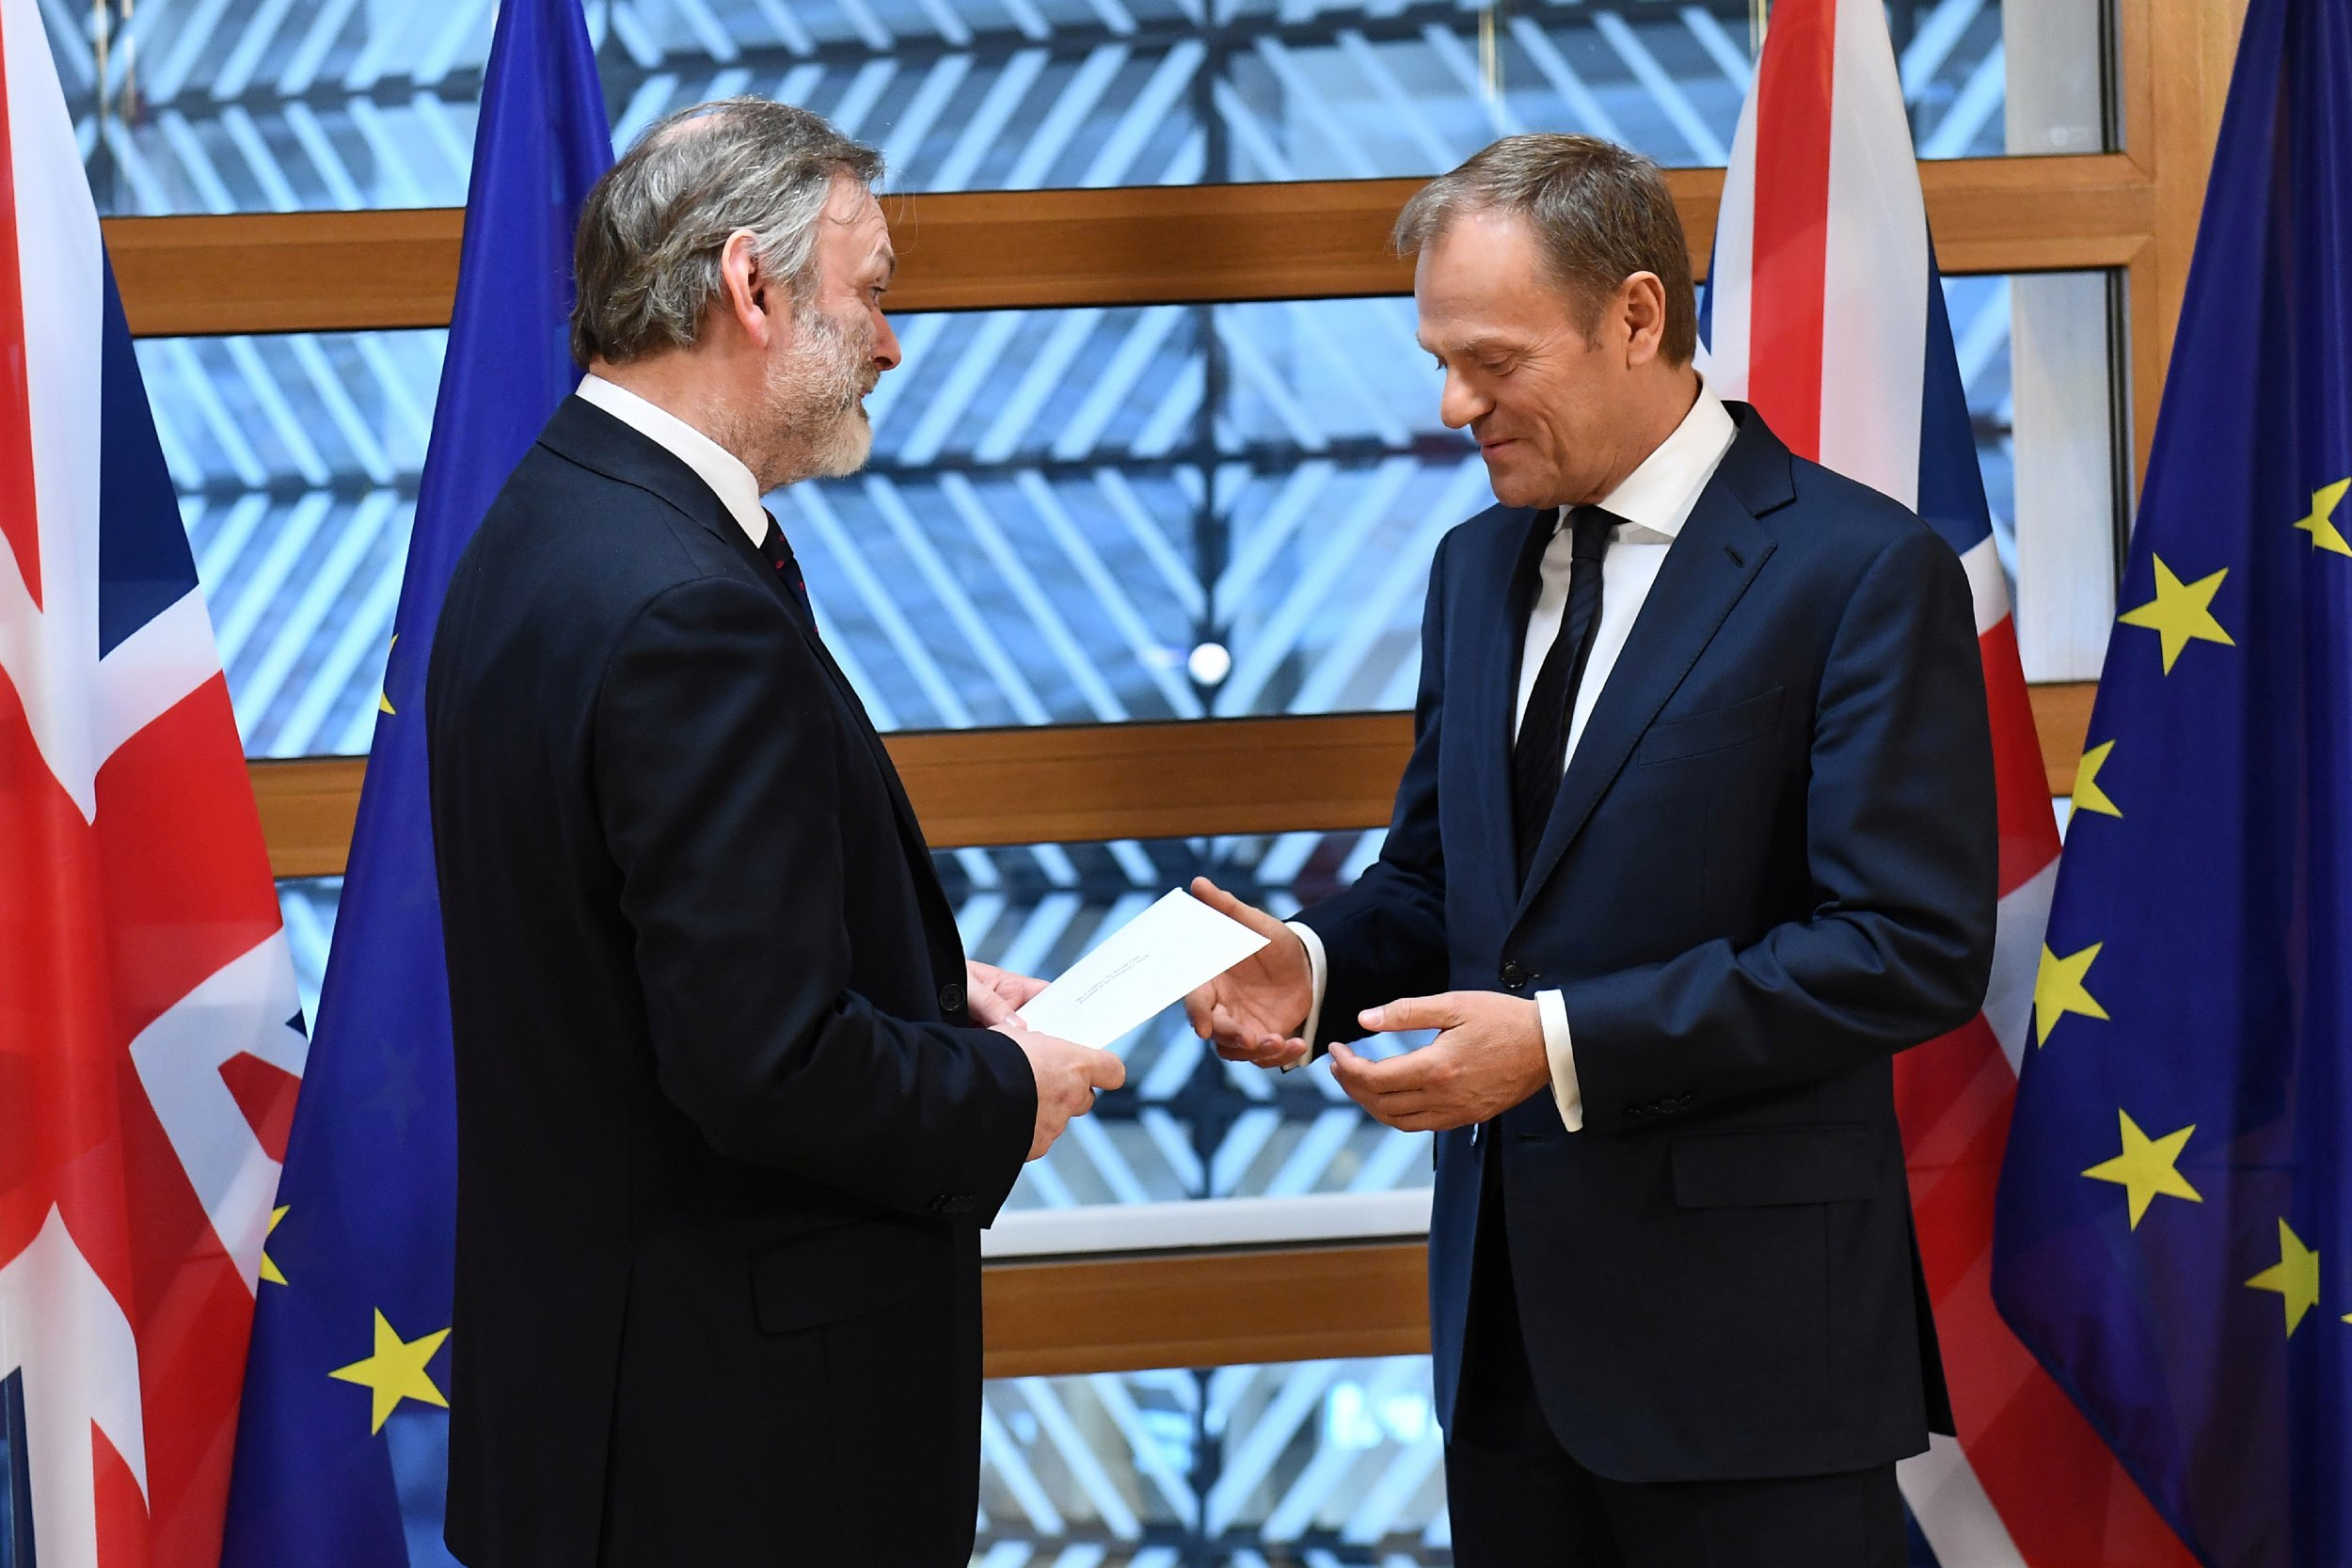 Britain's permanent representative to the European Union Tim Barrow, left, delivers British Prime Minister Theresa May's Brexit letter triggering Article 50 to Donald Tusk, right.